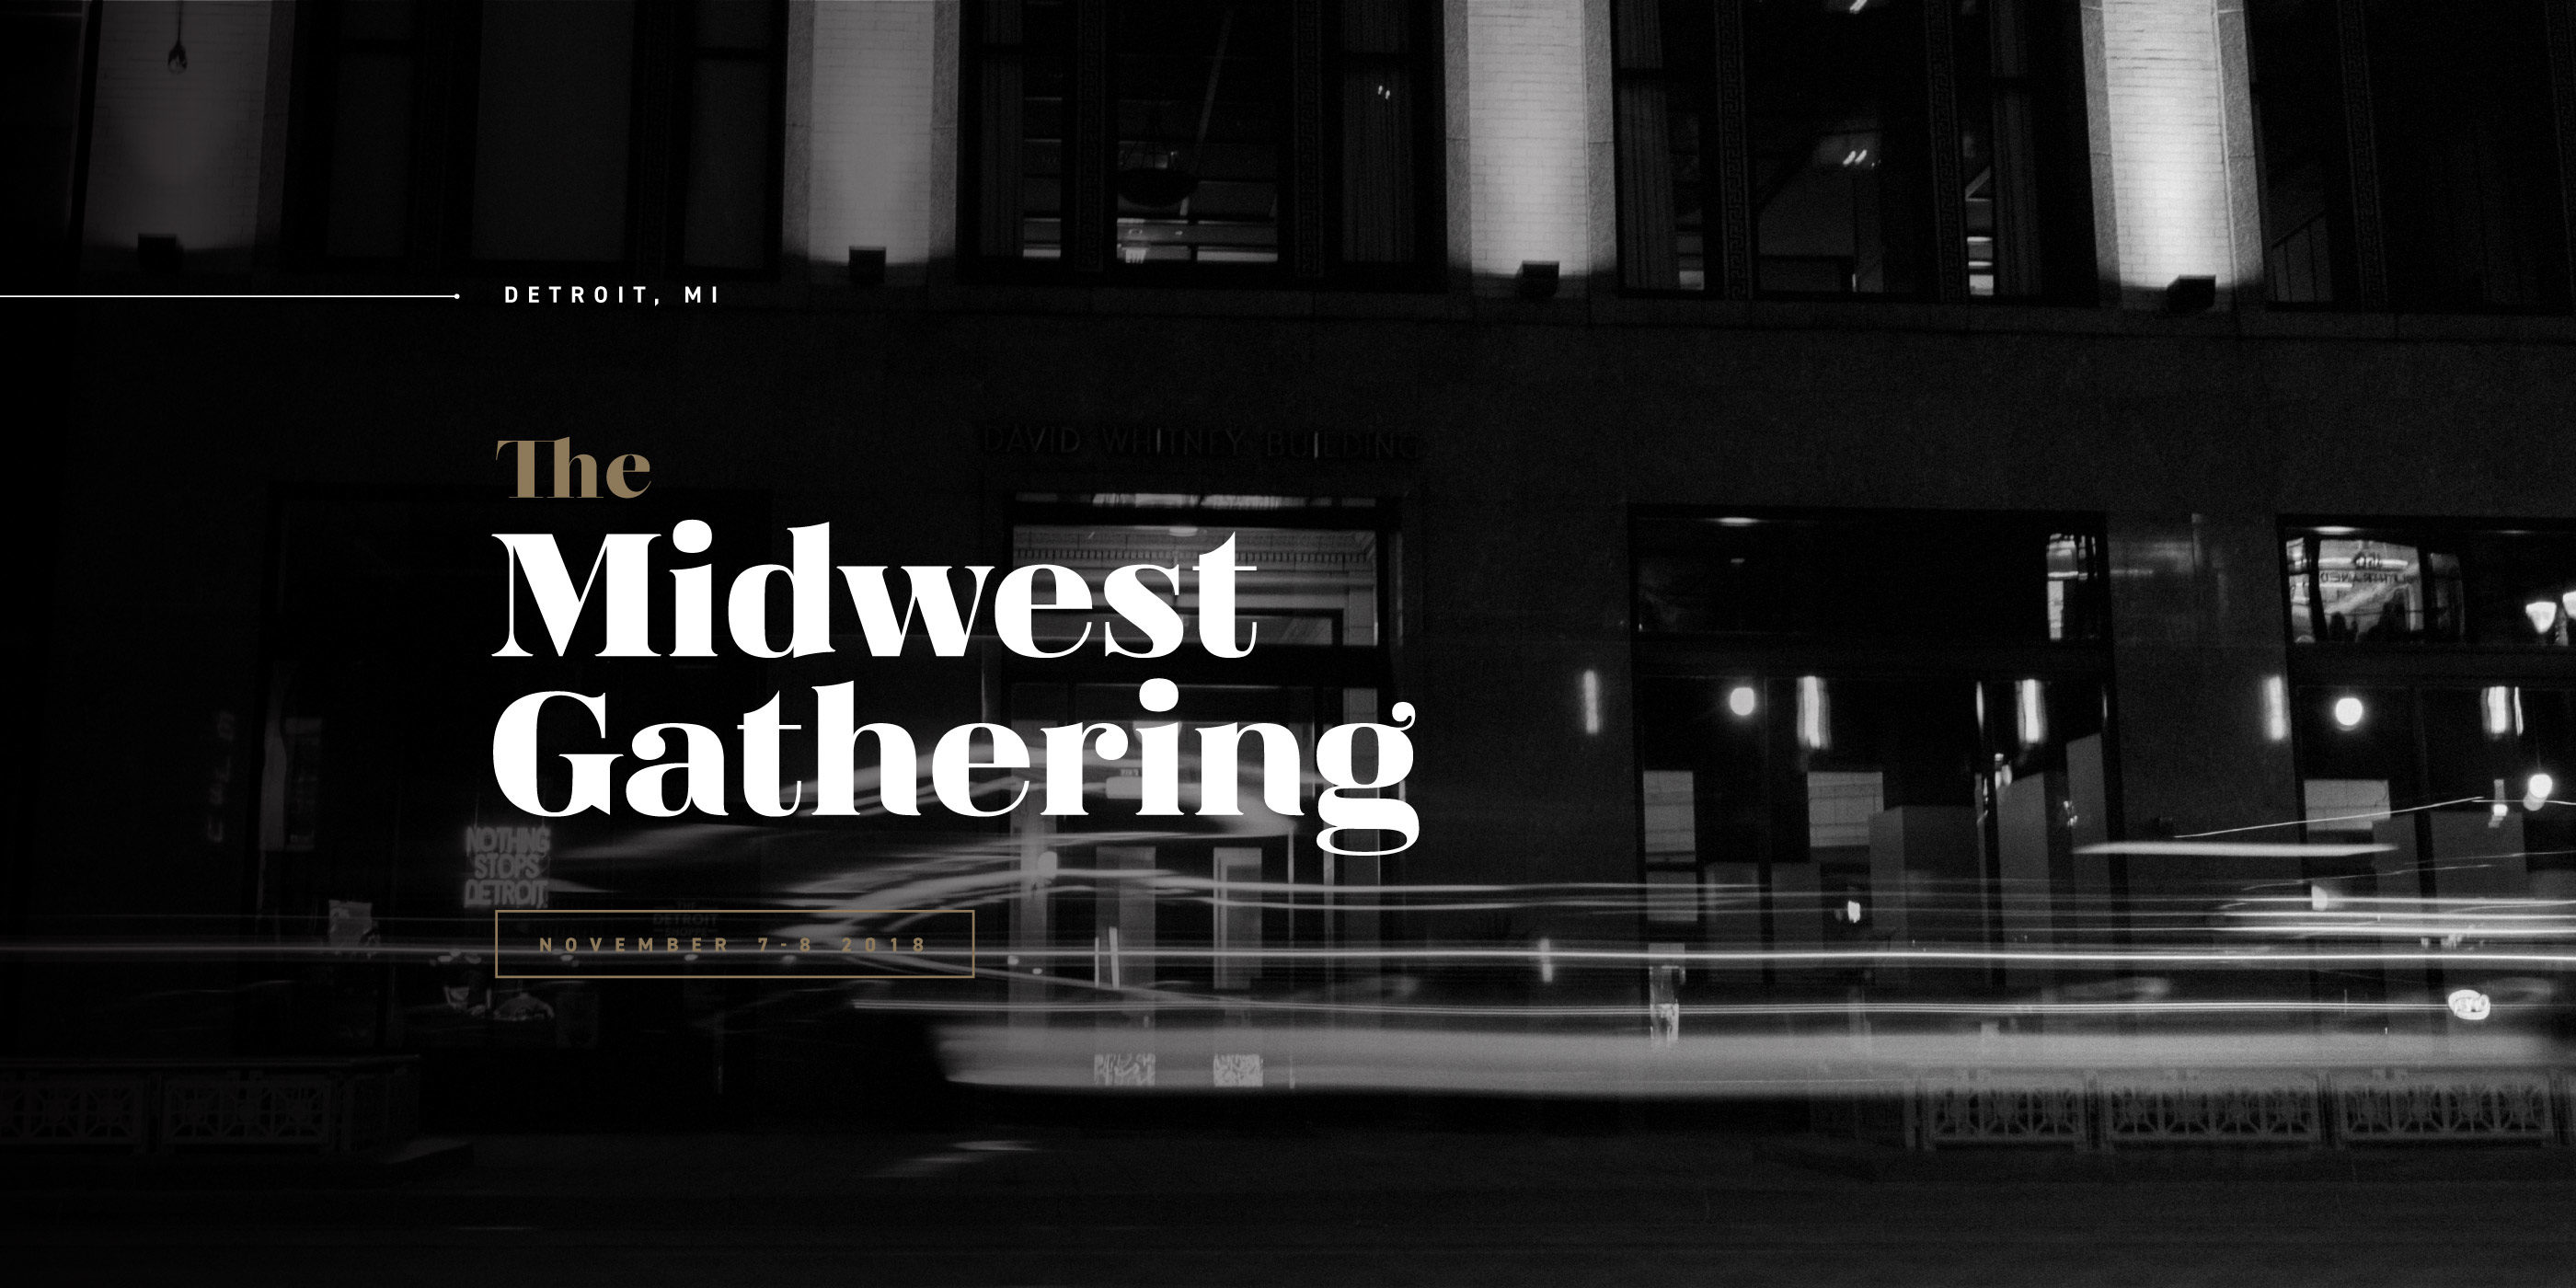 The Midwest Gathering